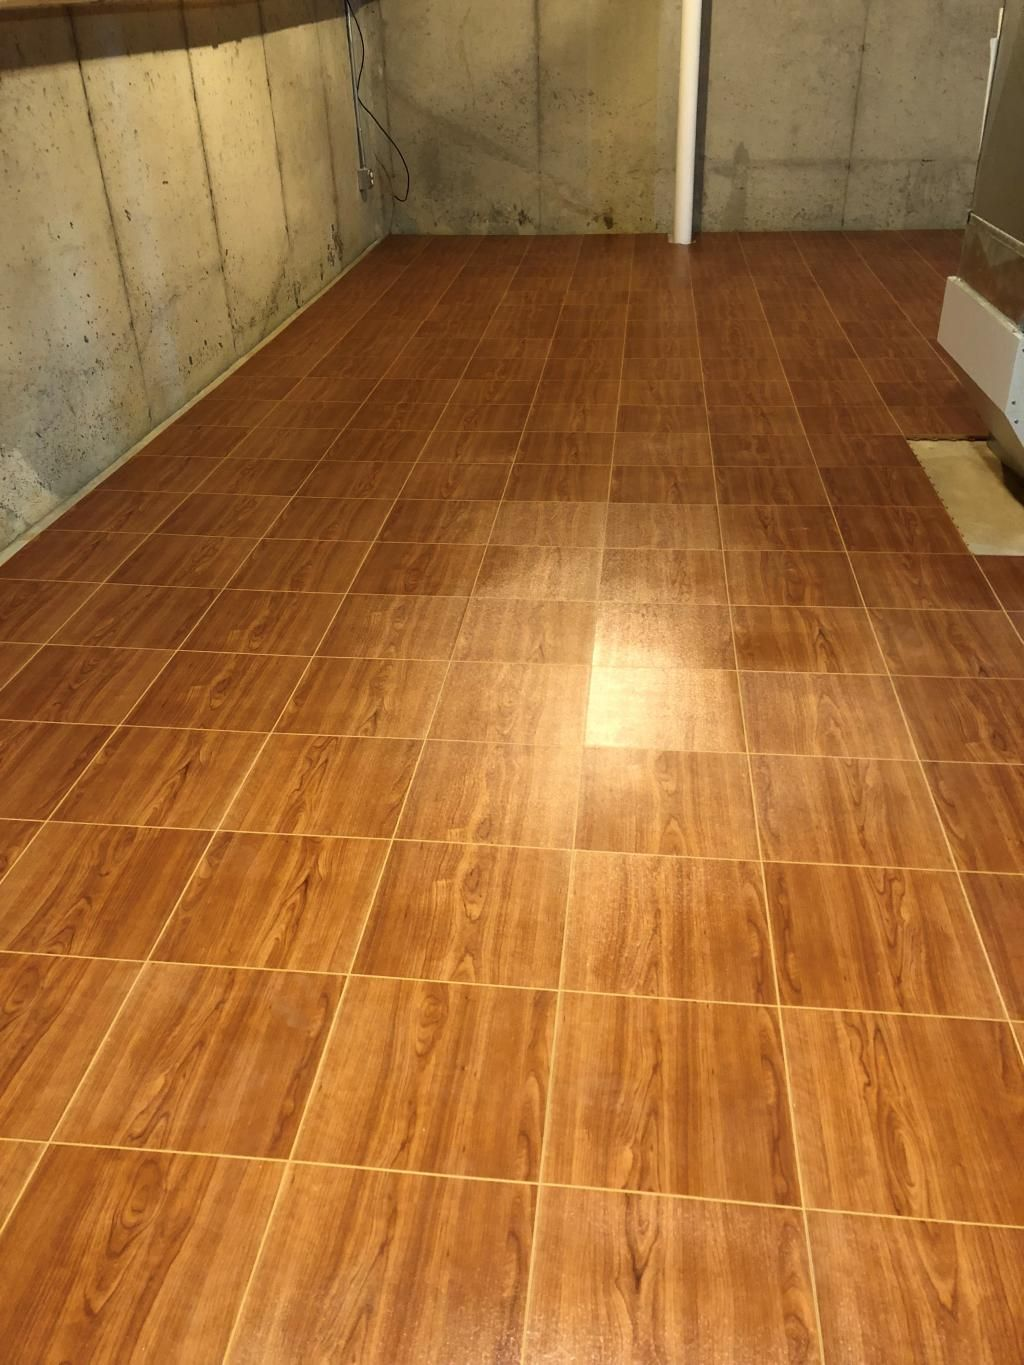 Max Tile Raised Floor Tile Tile floor, Basement flooring